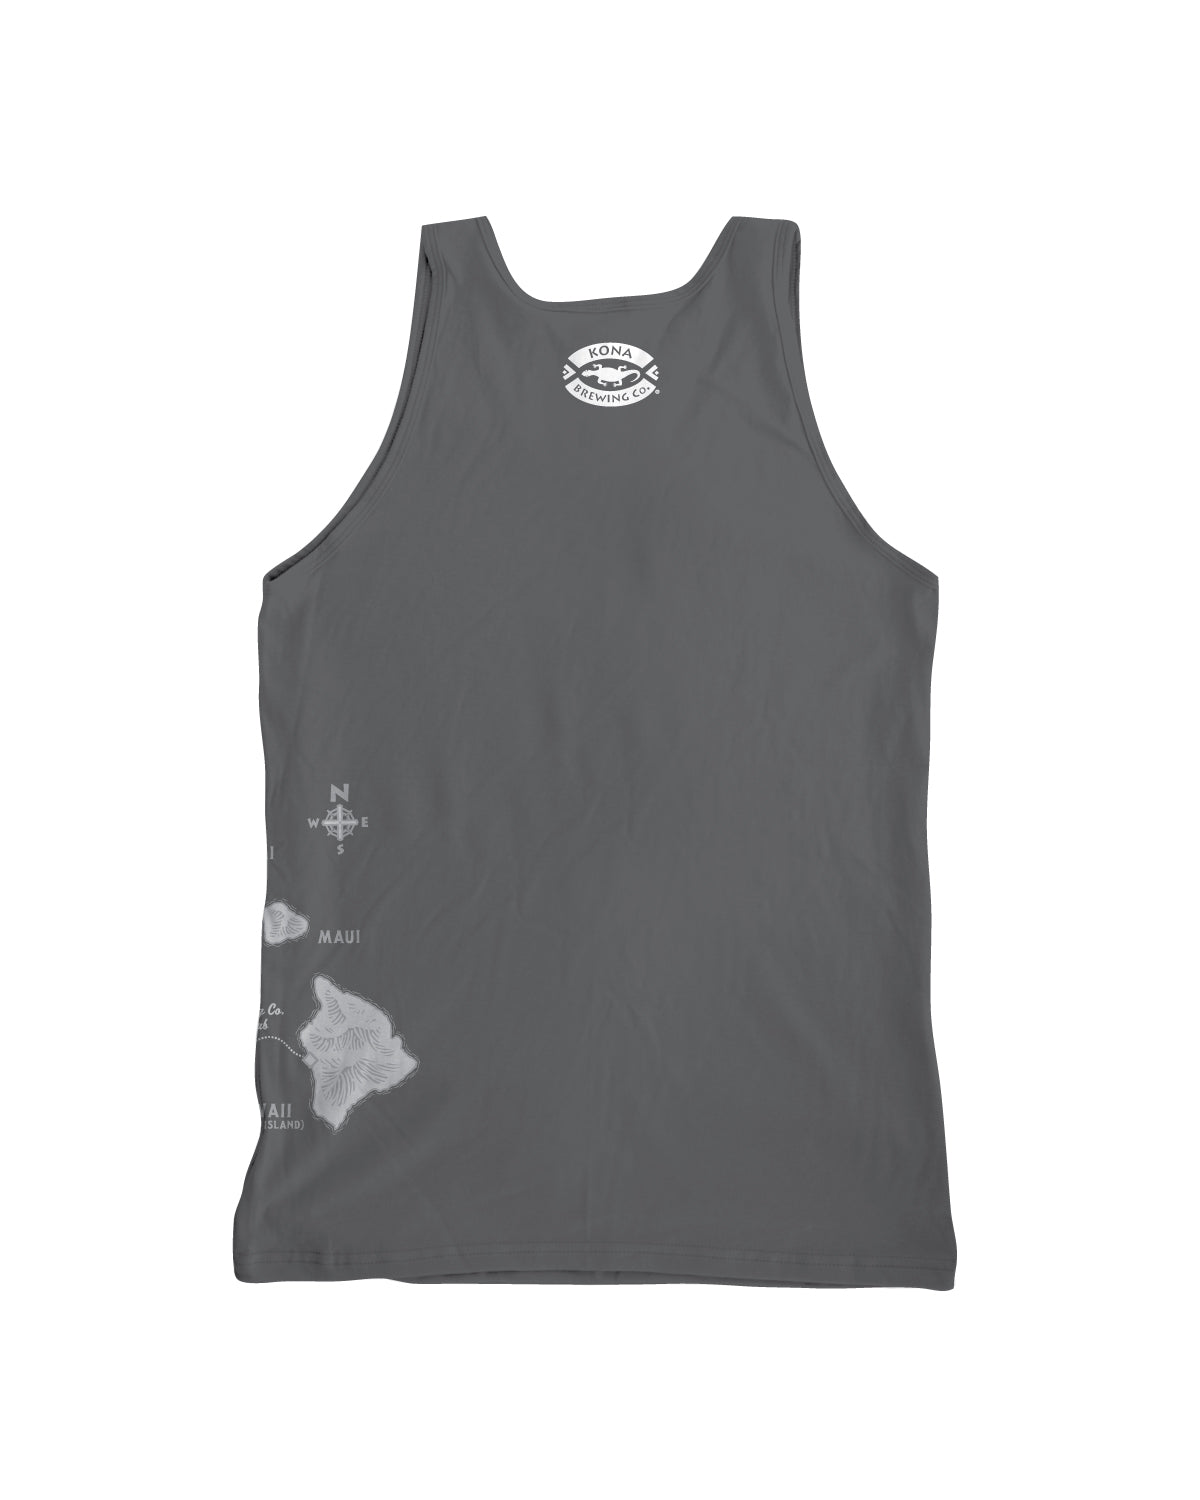 KONA SURFER GIRL TANK TOP- GRAY